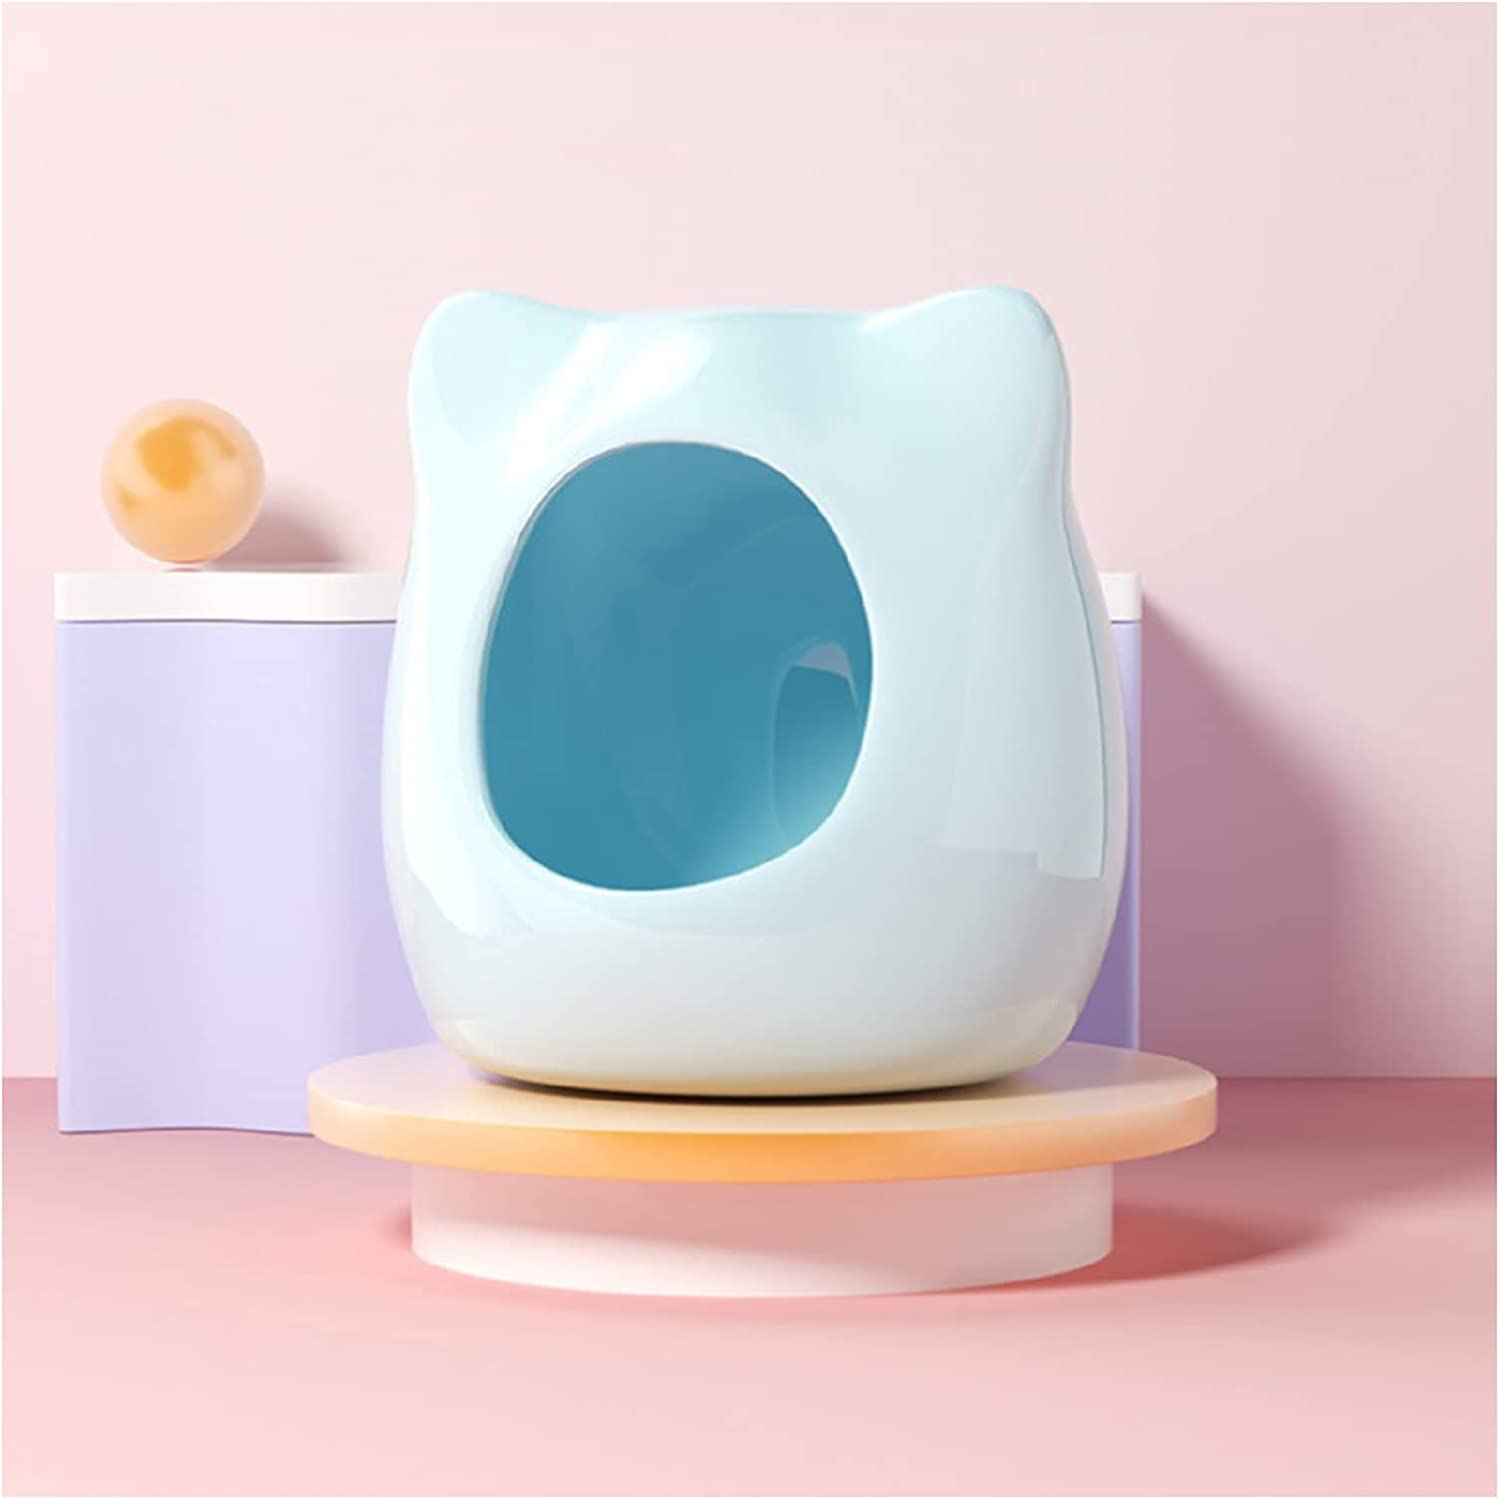 Small Animal Ceramic House Ultra-Cheap Deals Hamster Place Hiding Super beauty product restock quality top Bedding Suitab